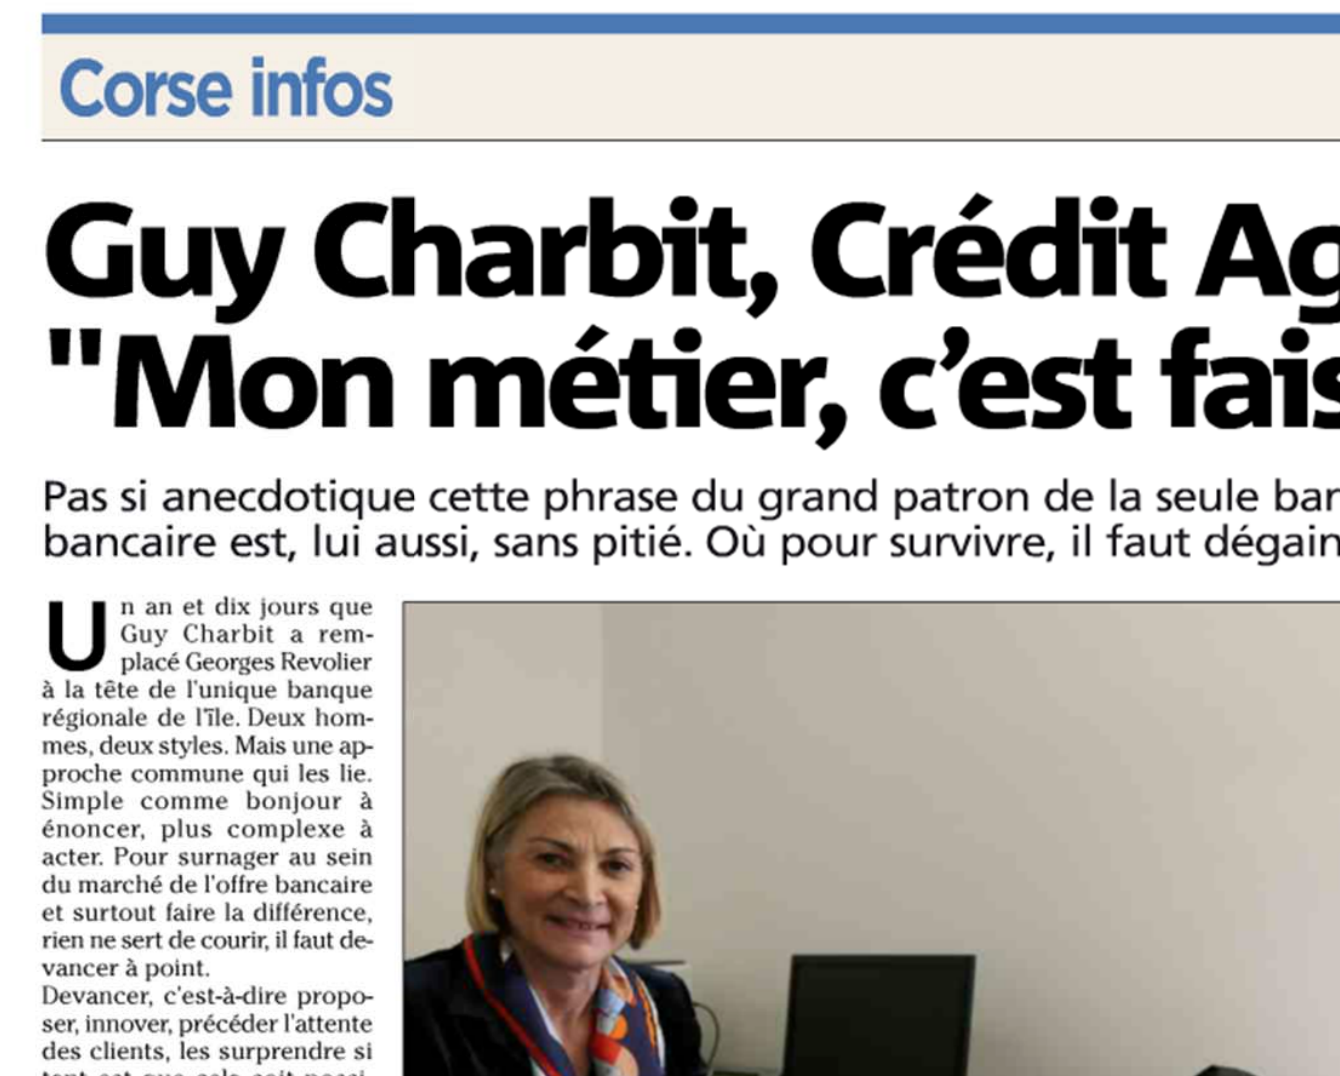 Fab Lab Corsica Published in Corse Matin - February 11th, 2015